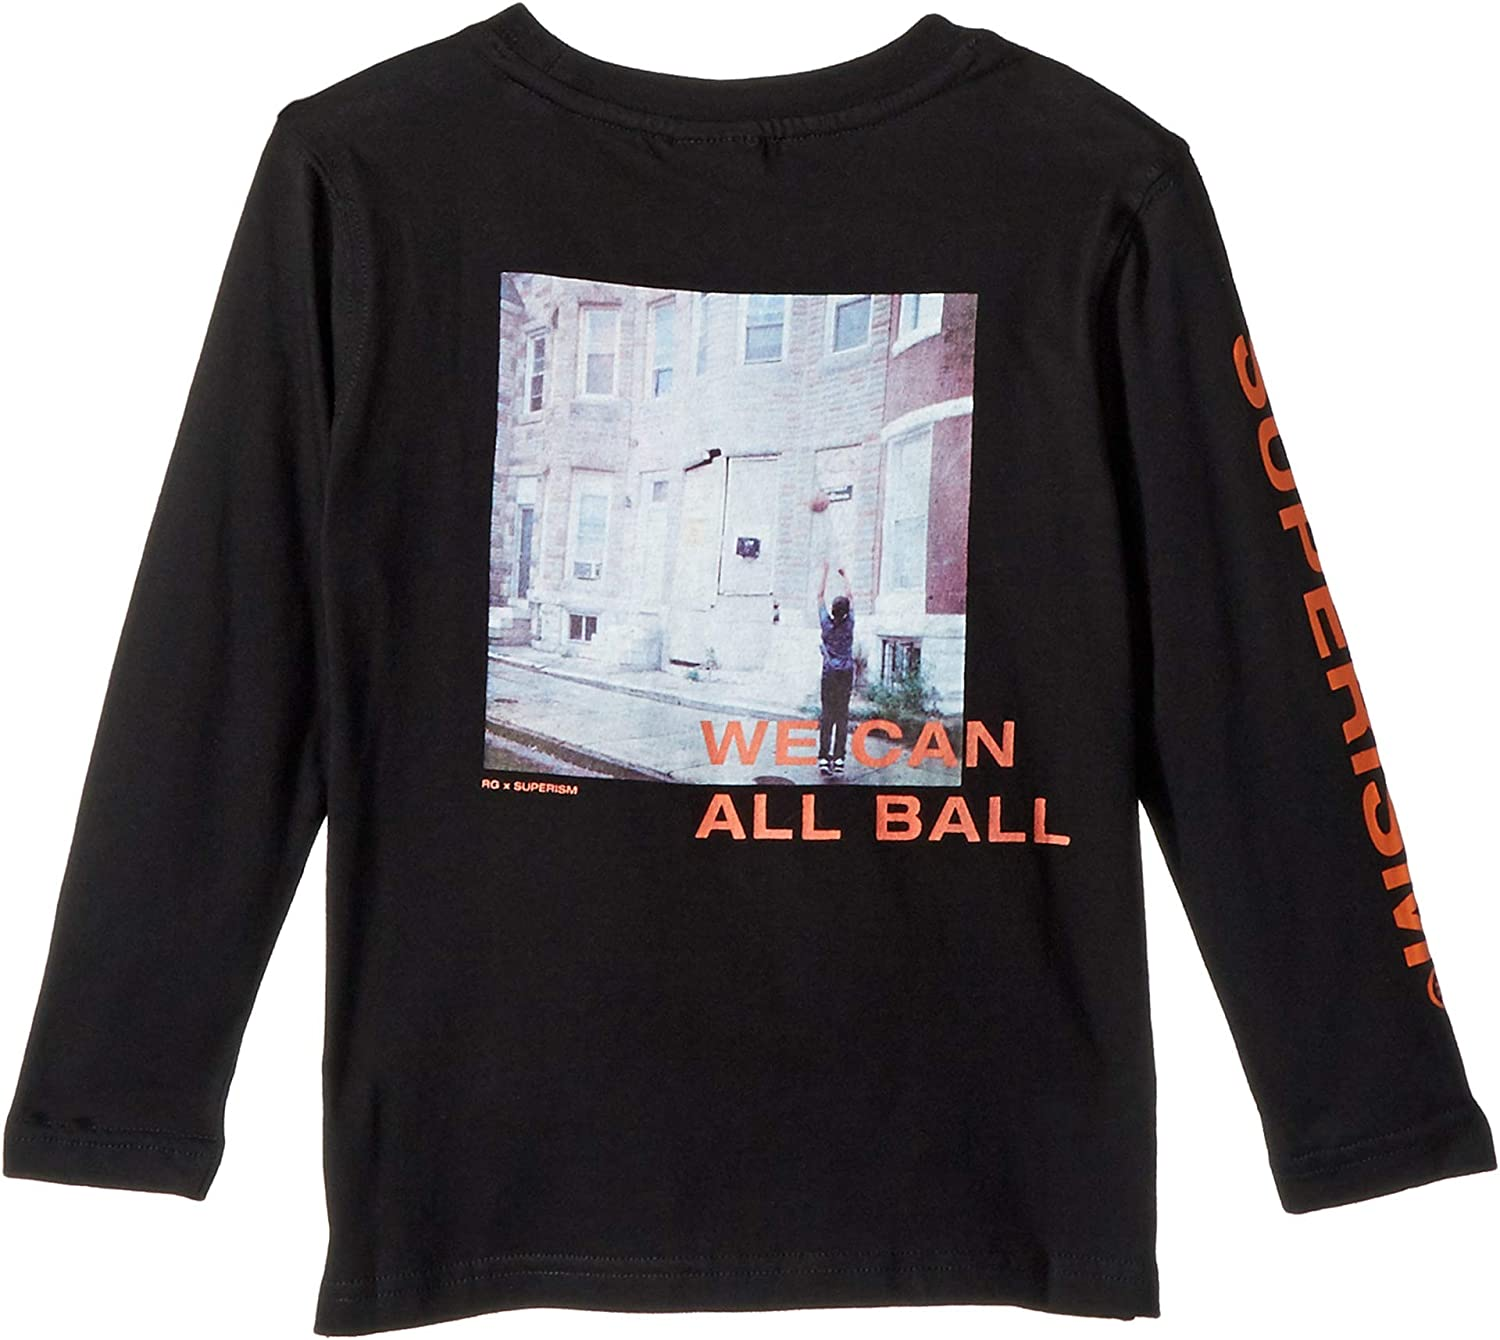 SUPERISM Mens All Ball Long Sleeve Graphic Tee (Toddler/Little Kids/Big Kids)